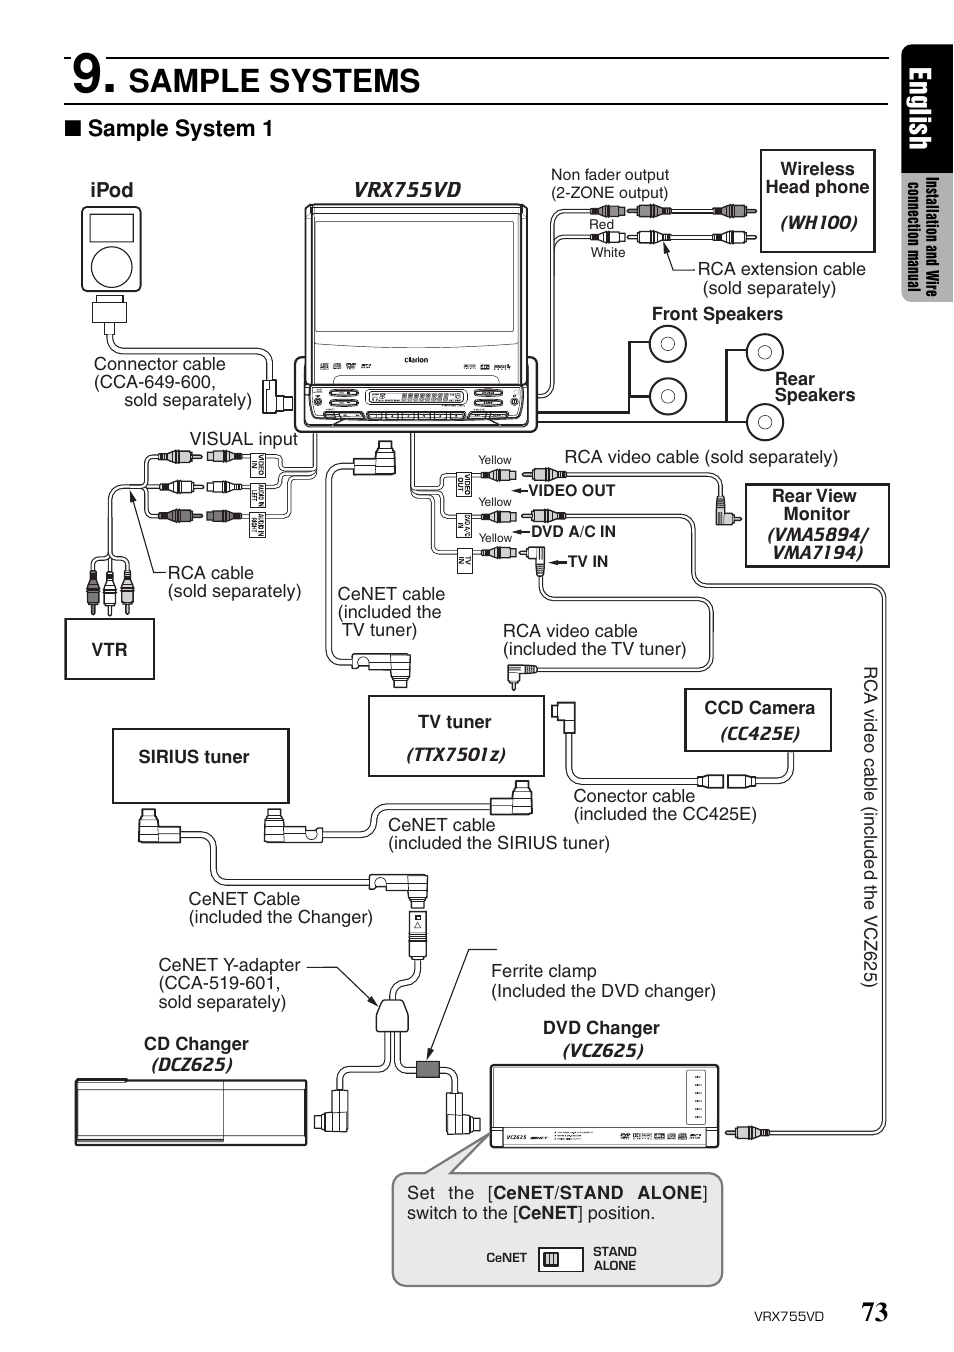 clarion rx755vd page71 clarion vrx755vd car dvd player wiring diagram wiring diagram clarion vrx755vd wiring diagram at panicattacktreatment.co